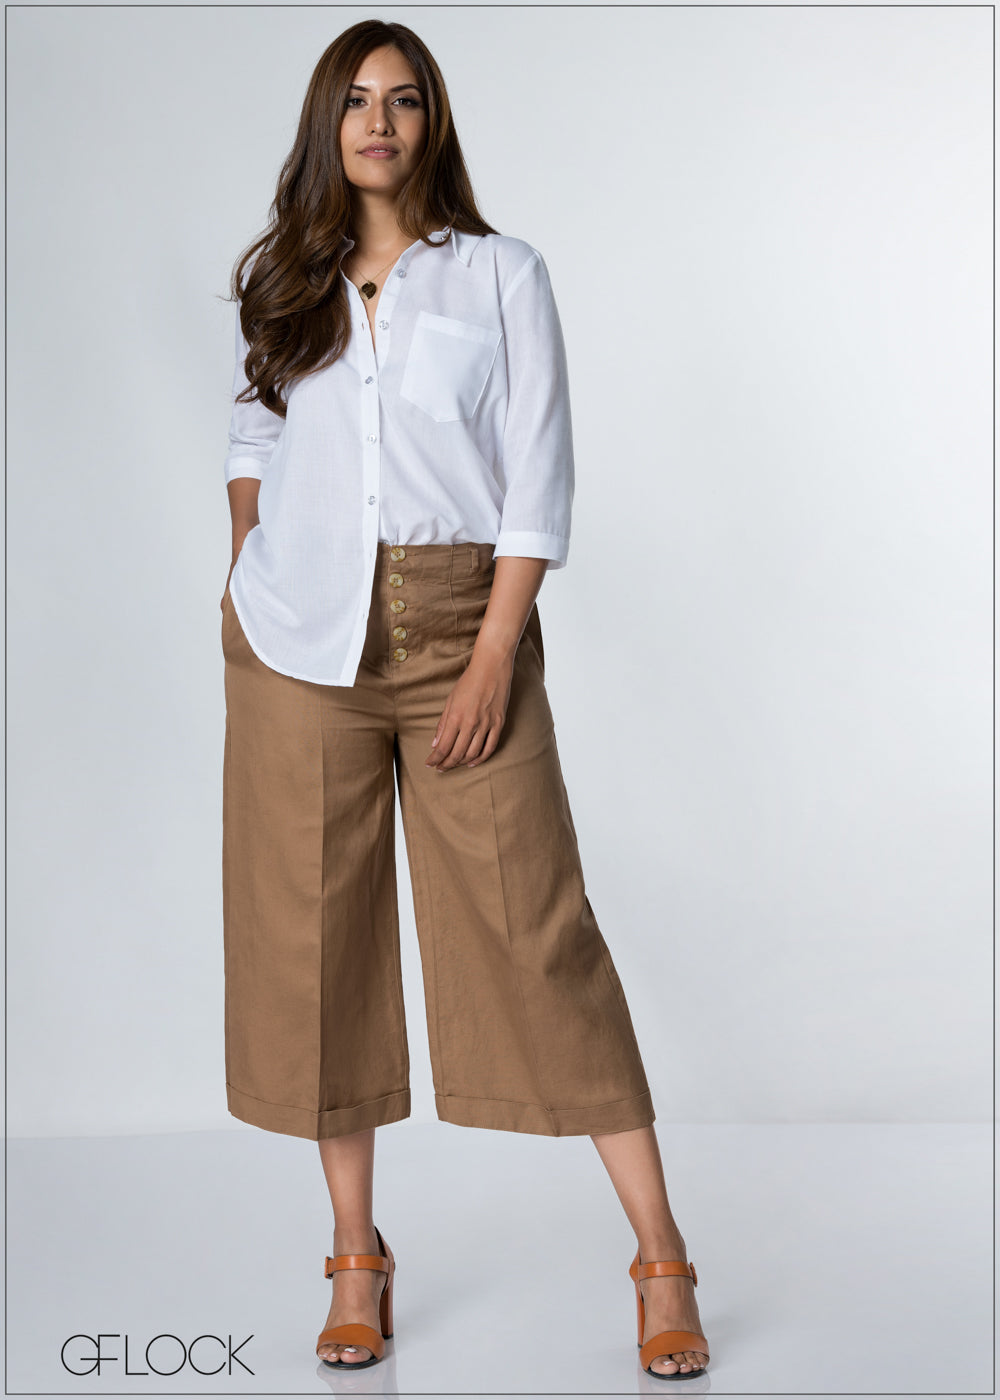 Buttoned Up Flair Linen Pant - GFLOCK.LK